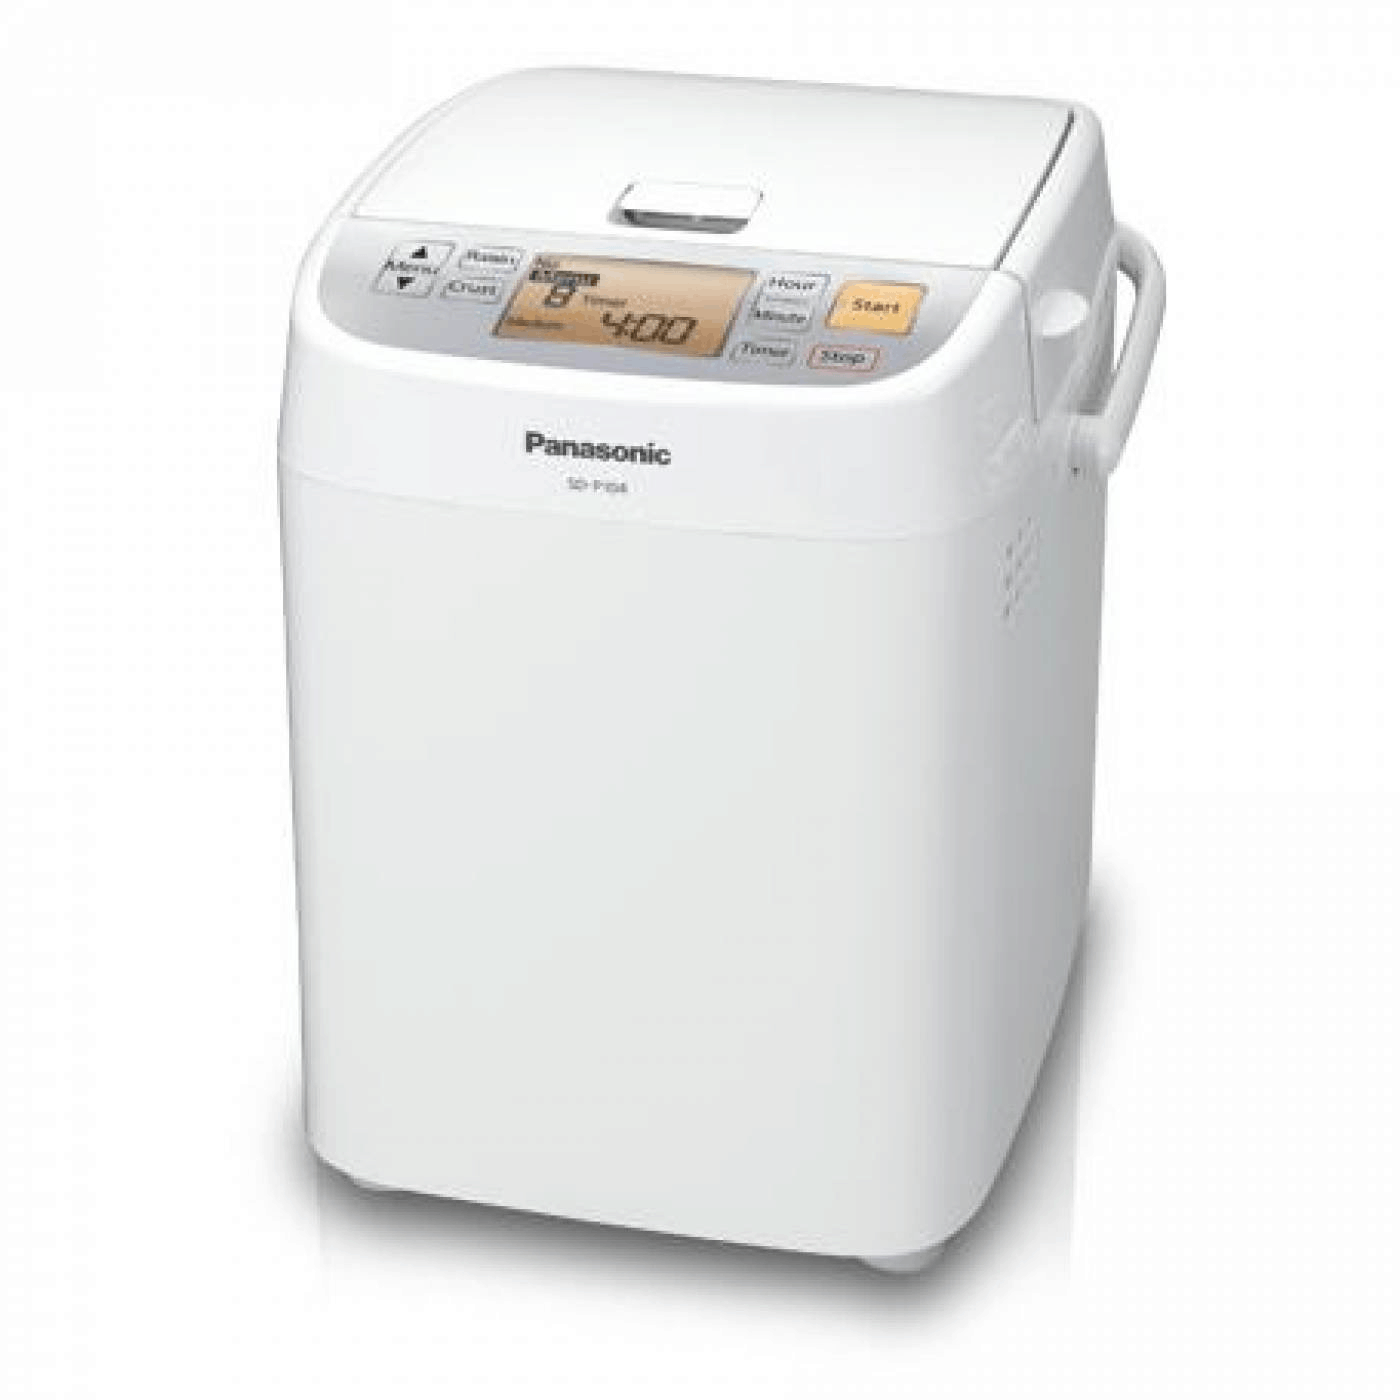 Panasonic SD-P104WSH Breadmaker with 13 menu functions is the best bread machine to buy in Singapore